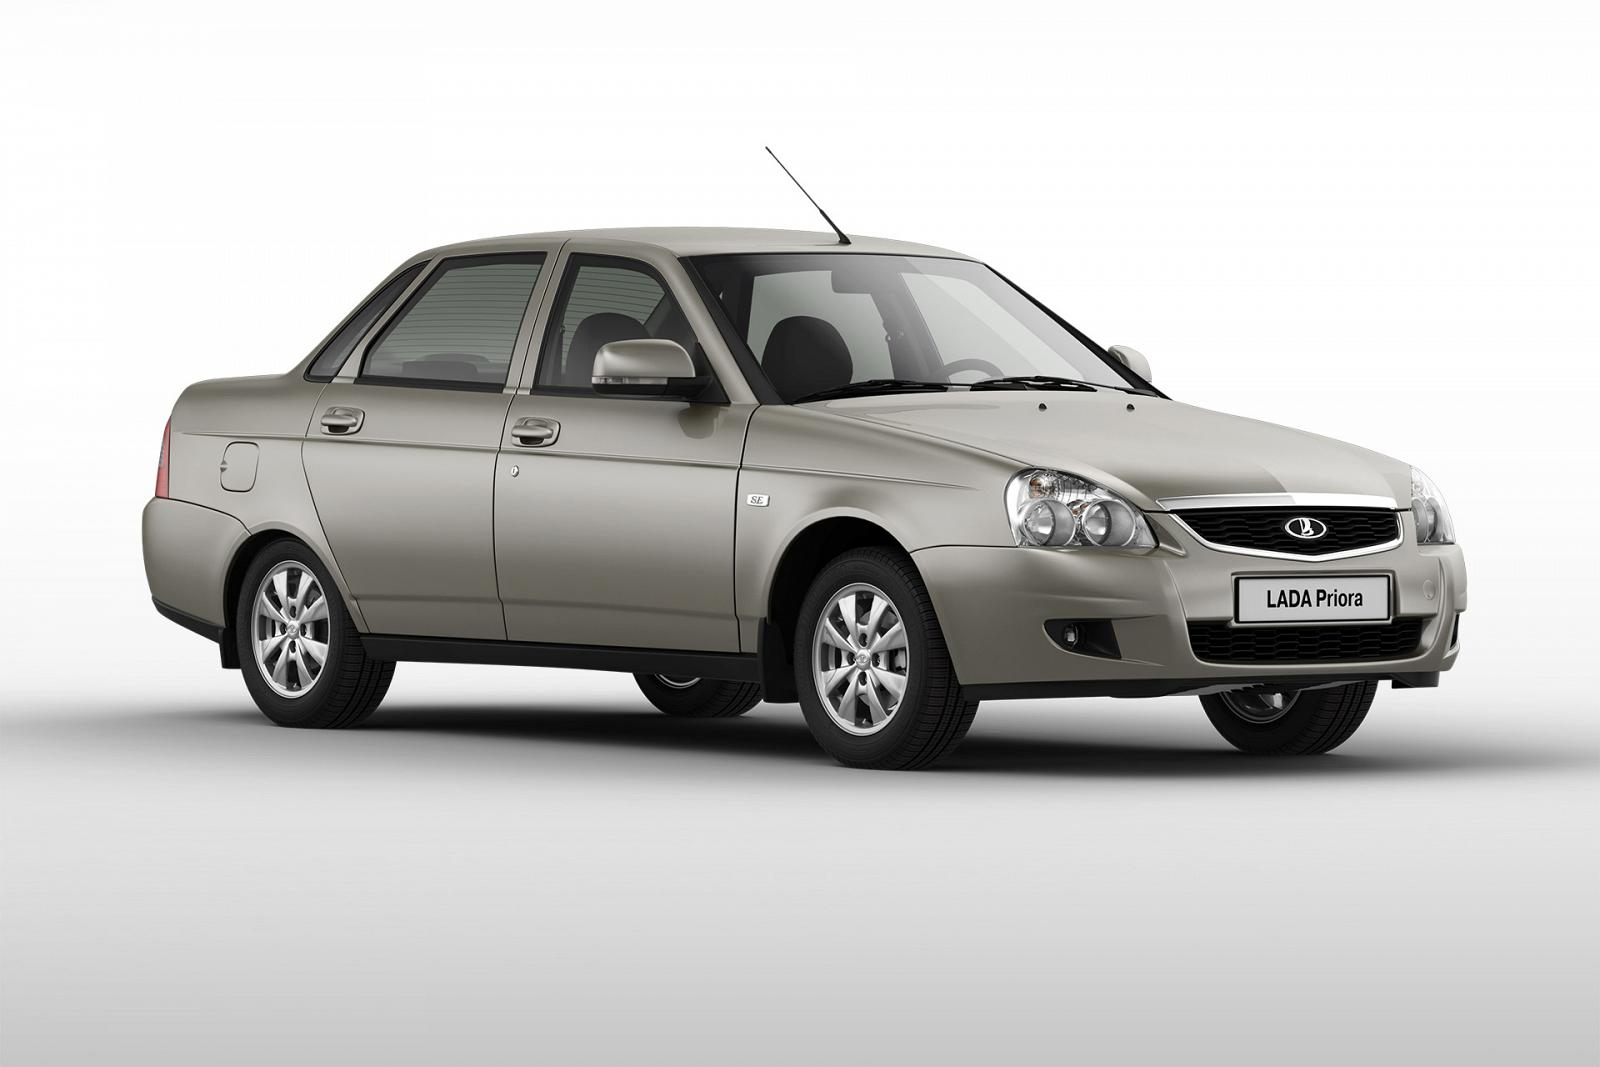 LADA_Priora_Sedan_9